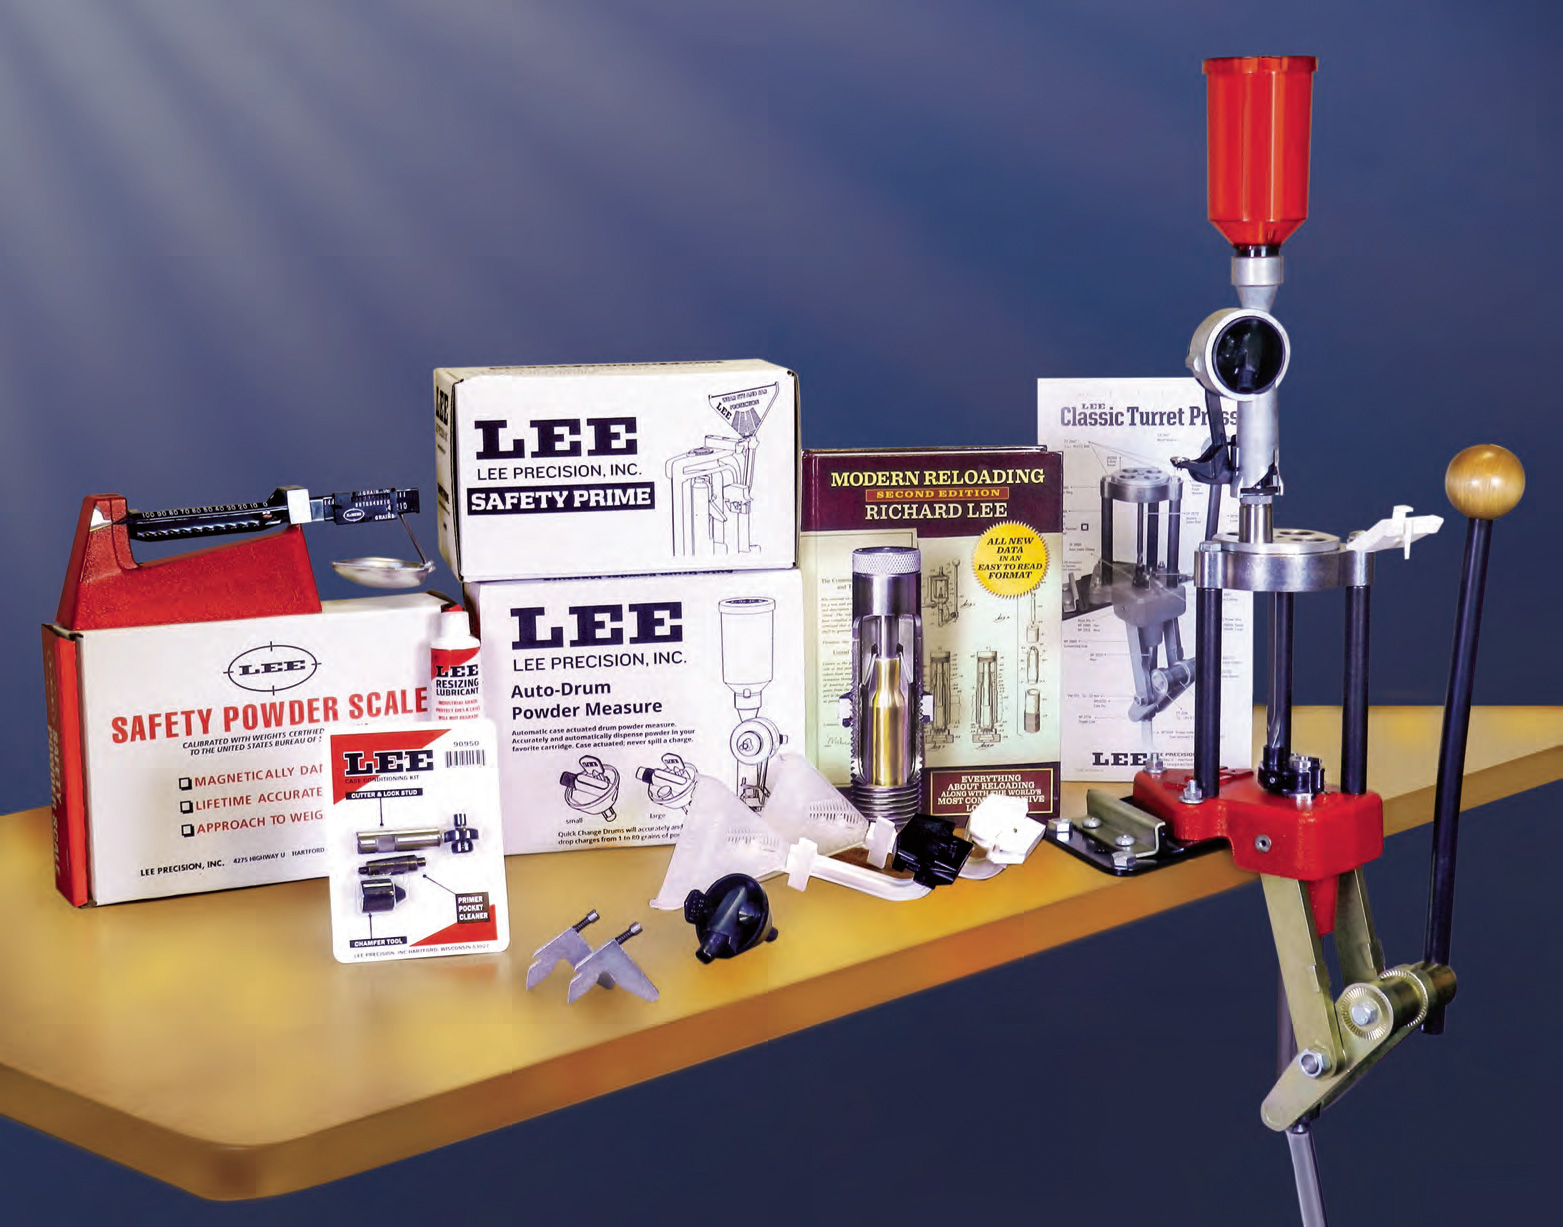 Lee Classic Turret Press Kit